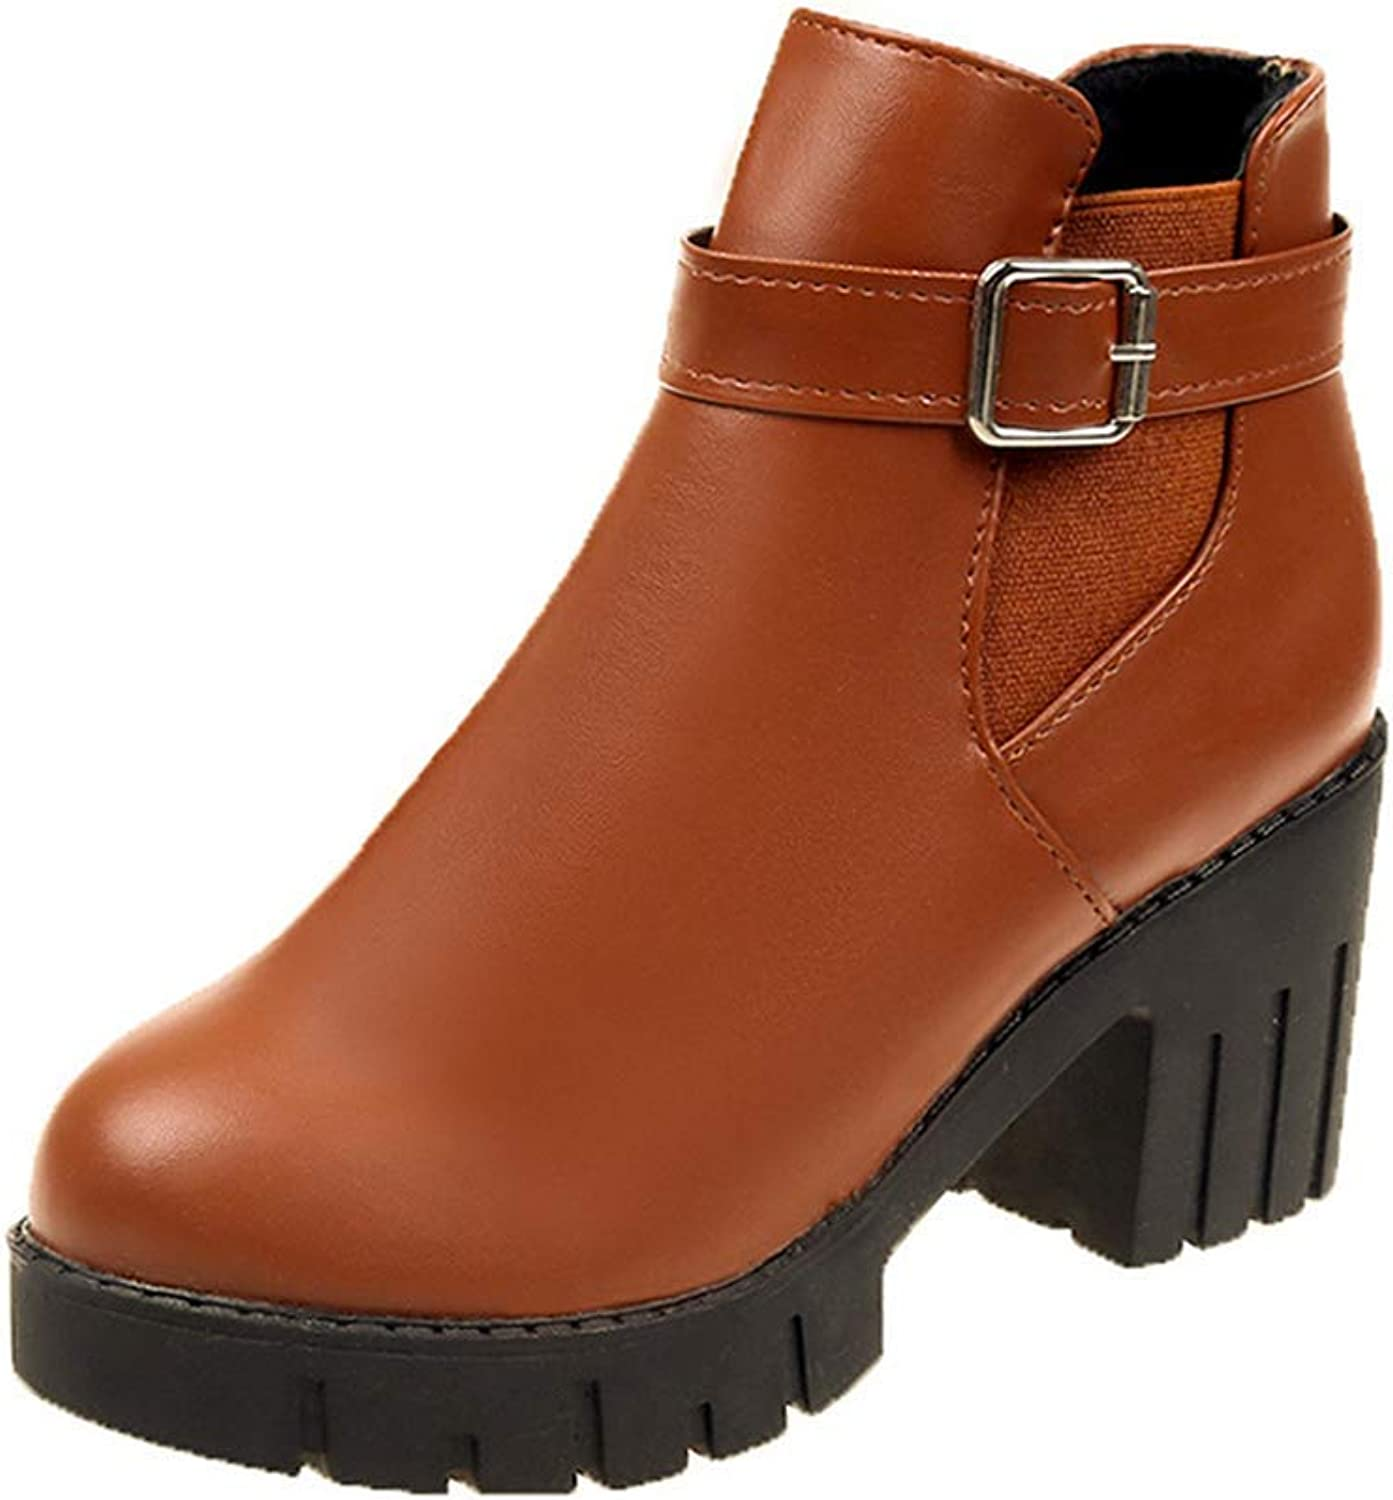 Women's Detachable Buckle Ankle Rain shoes Anti Slip Short Elastic Slip On Waterproof Chelsea Boots